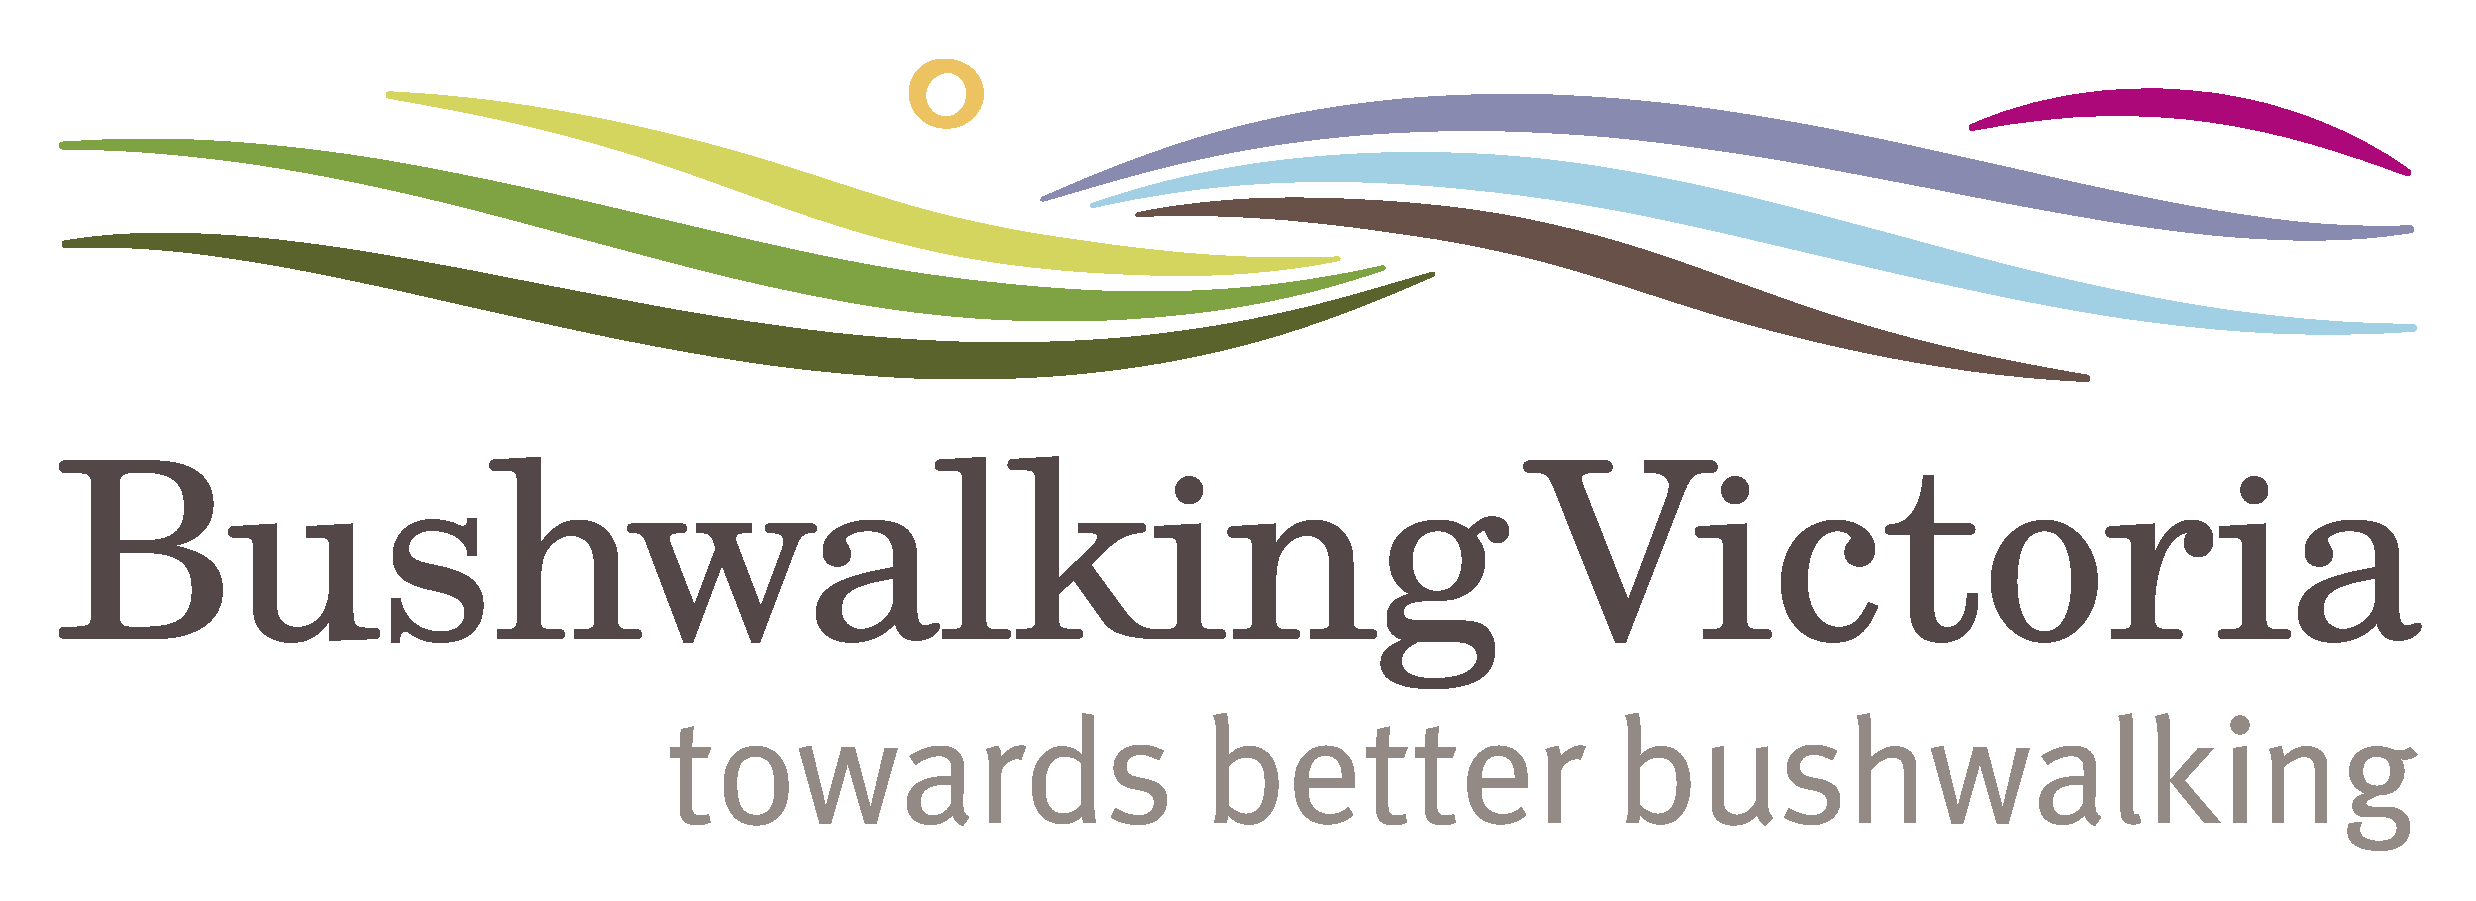 Bushwalking Vic website logo